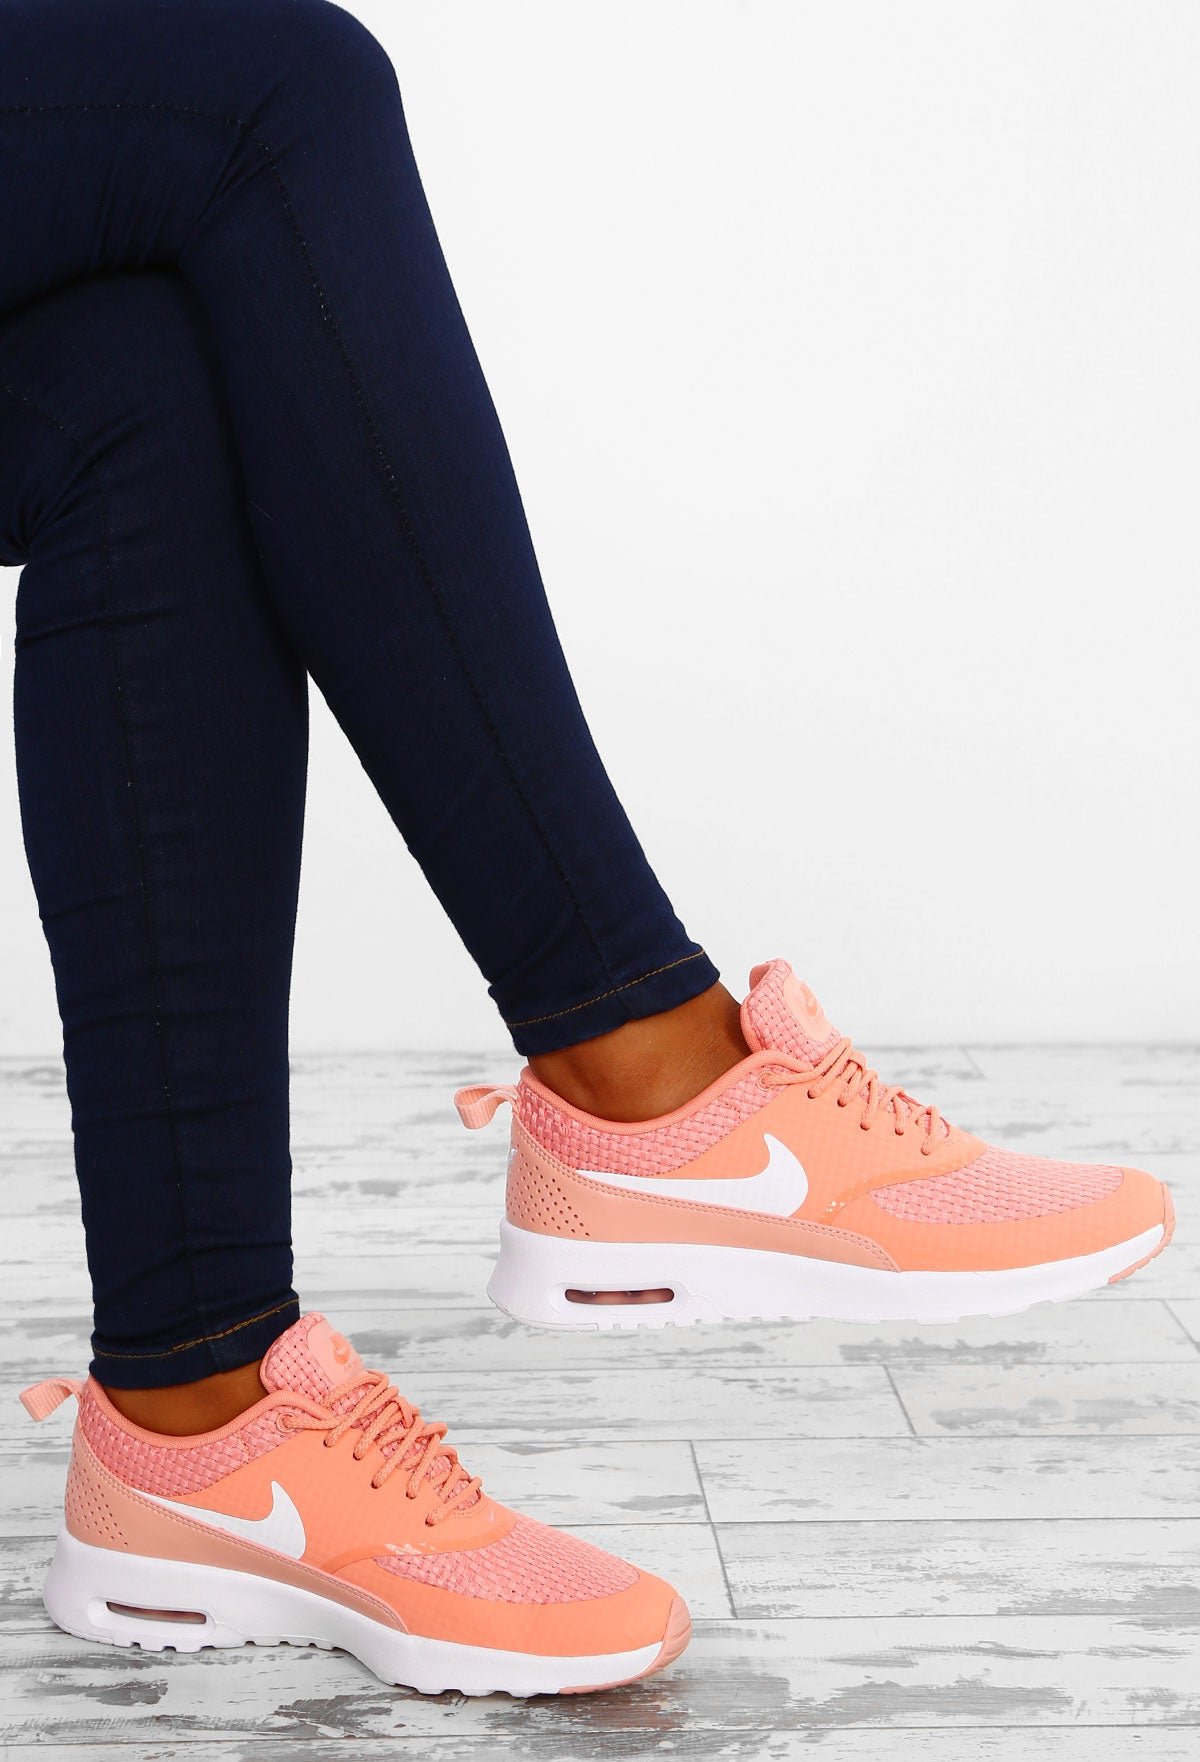 469bd6ce050ab Nike Air Max Thea Crimson Bliss Trainers – Pink Boutique UK